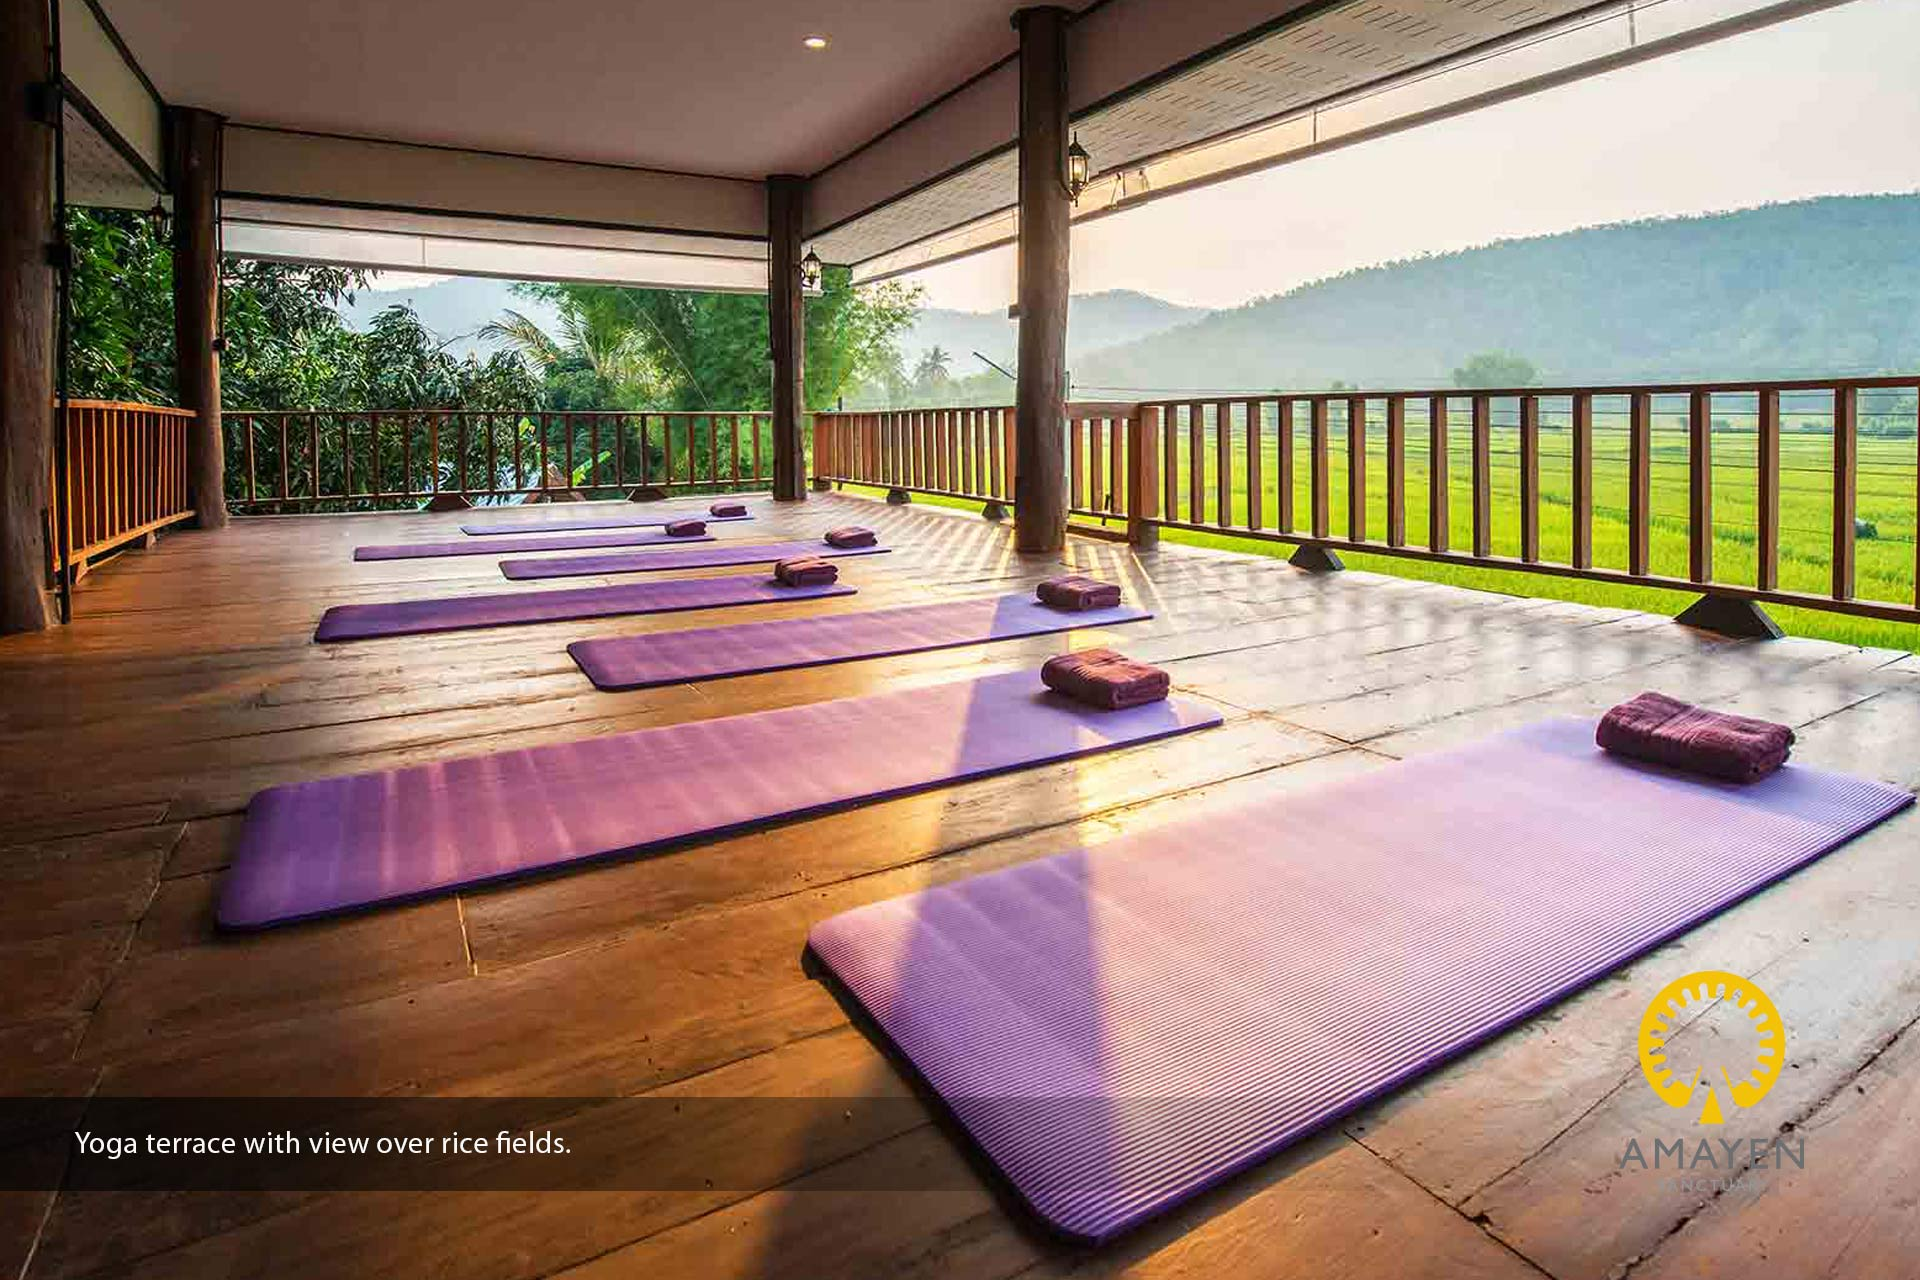 yoga-retreats-chiang-mai-thailand-2019